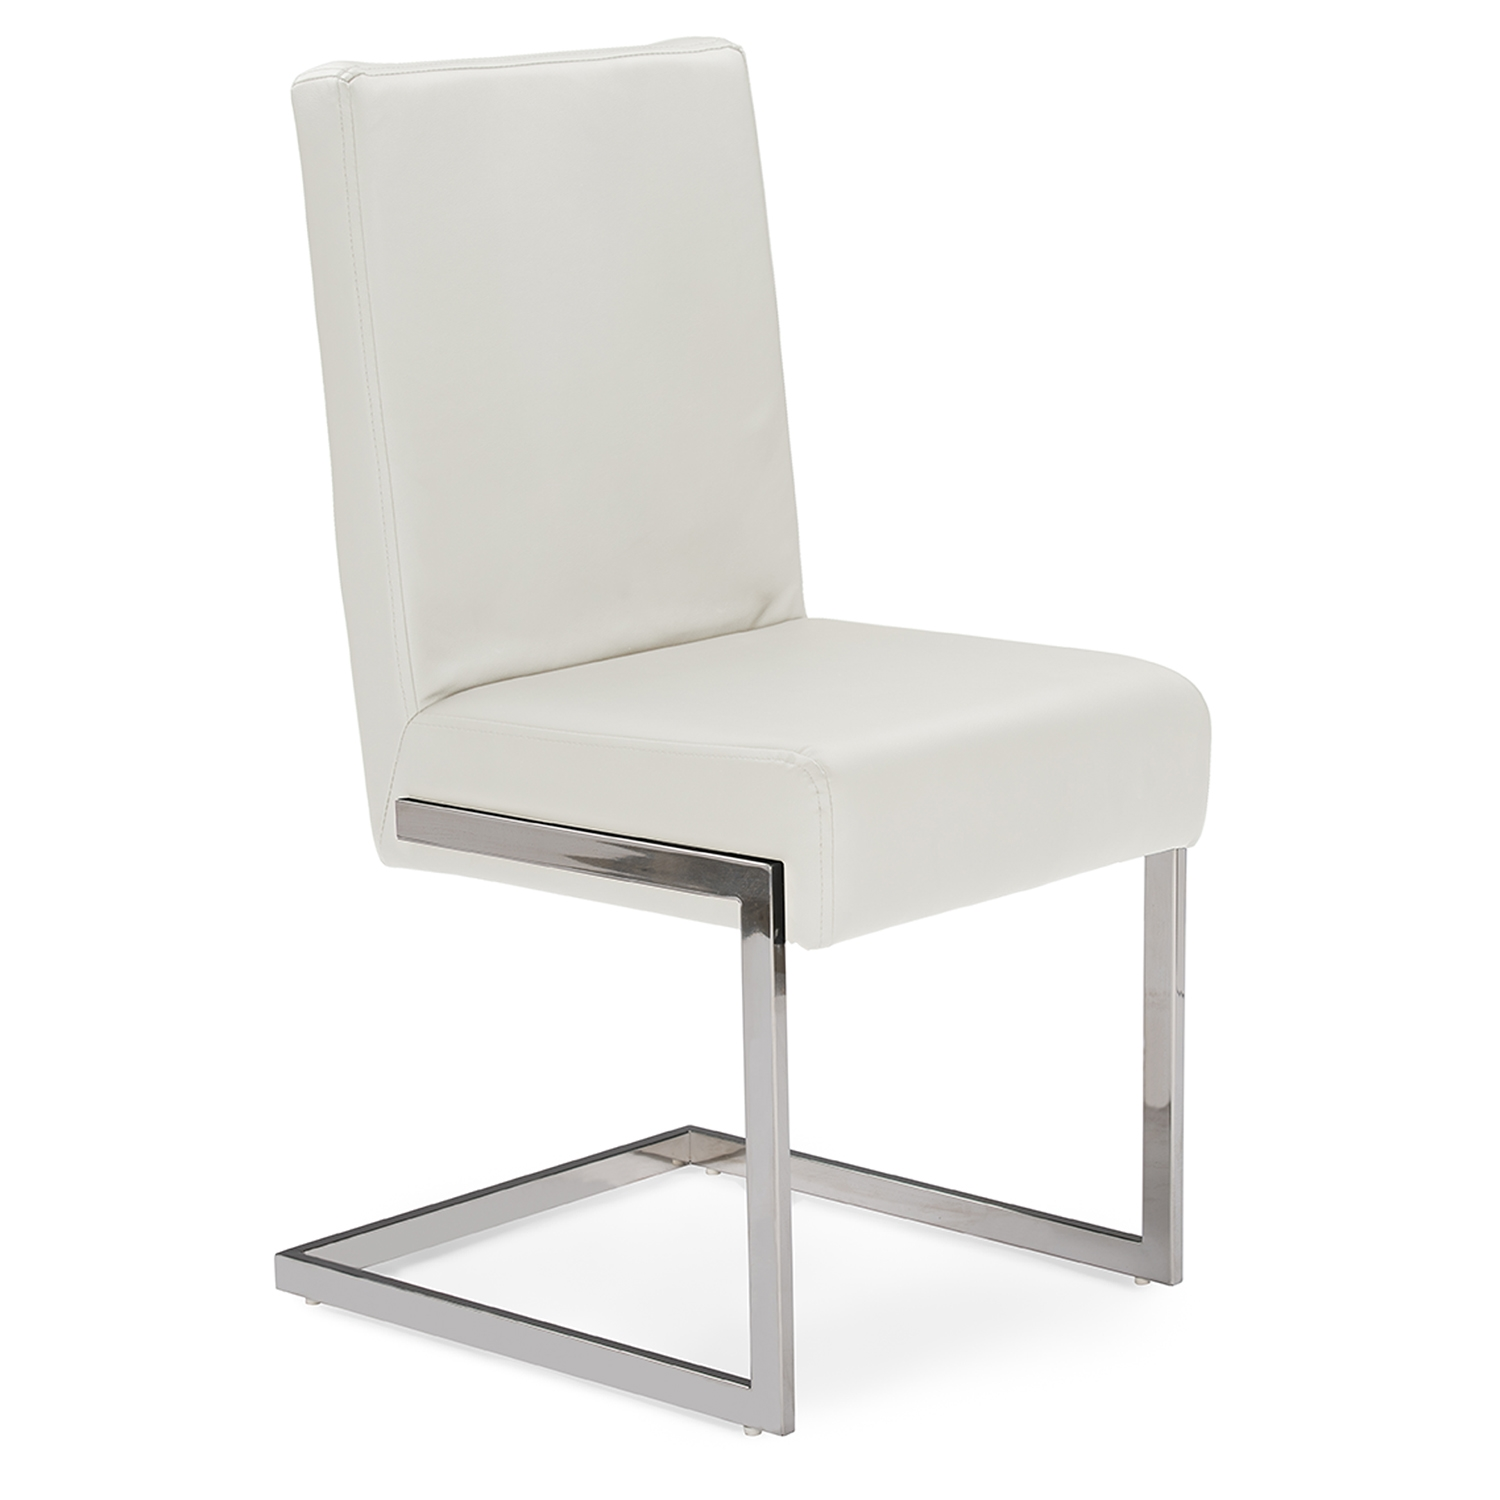 Attrayant Baxton Studio Toulan Modern And Contemporary White Faux Leather Upholstered  Stainless Steel Dining Chair (Set ...